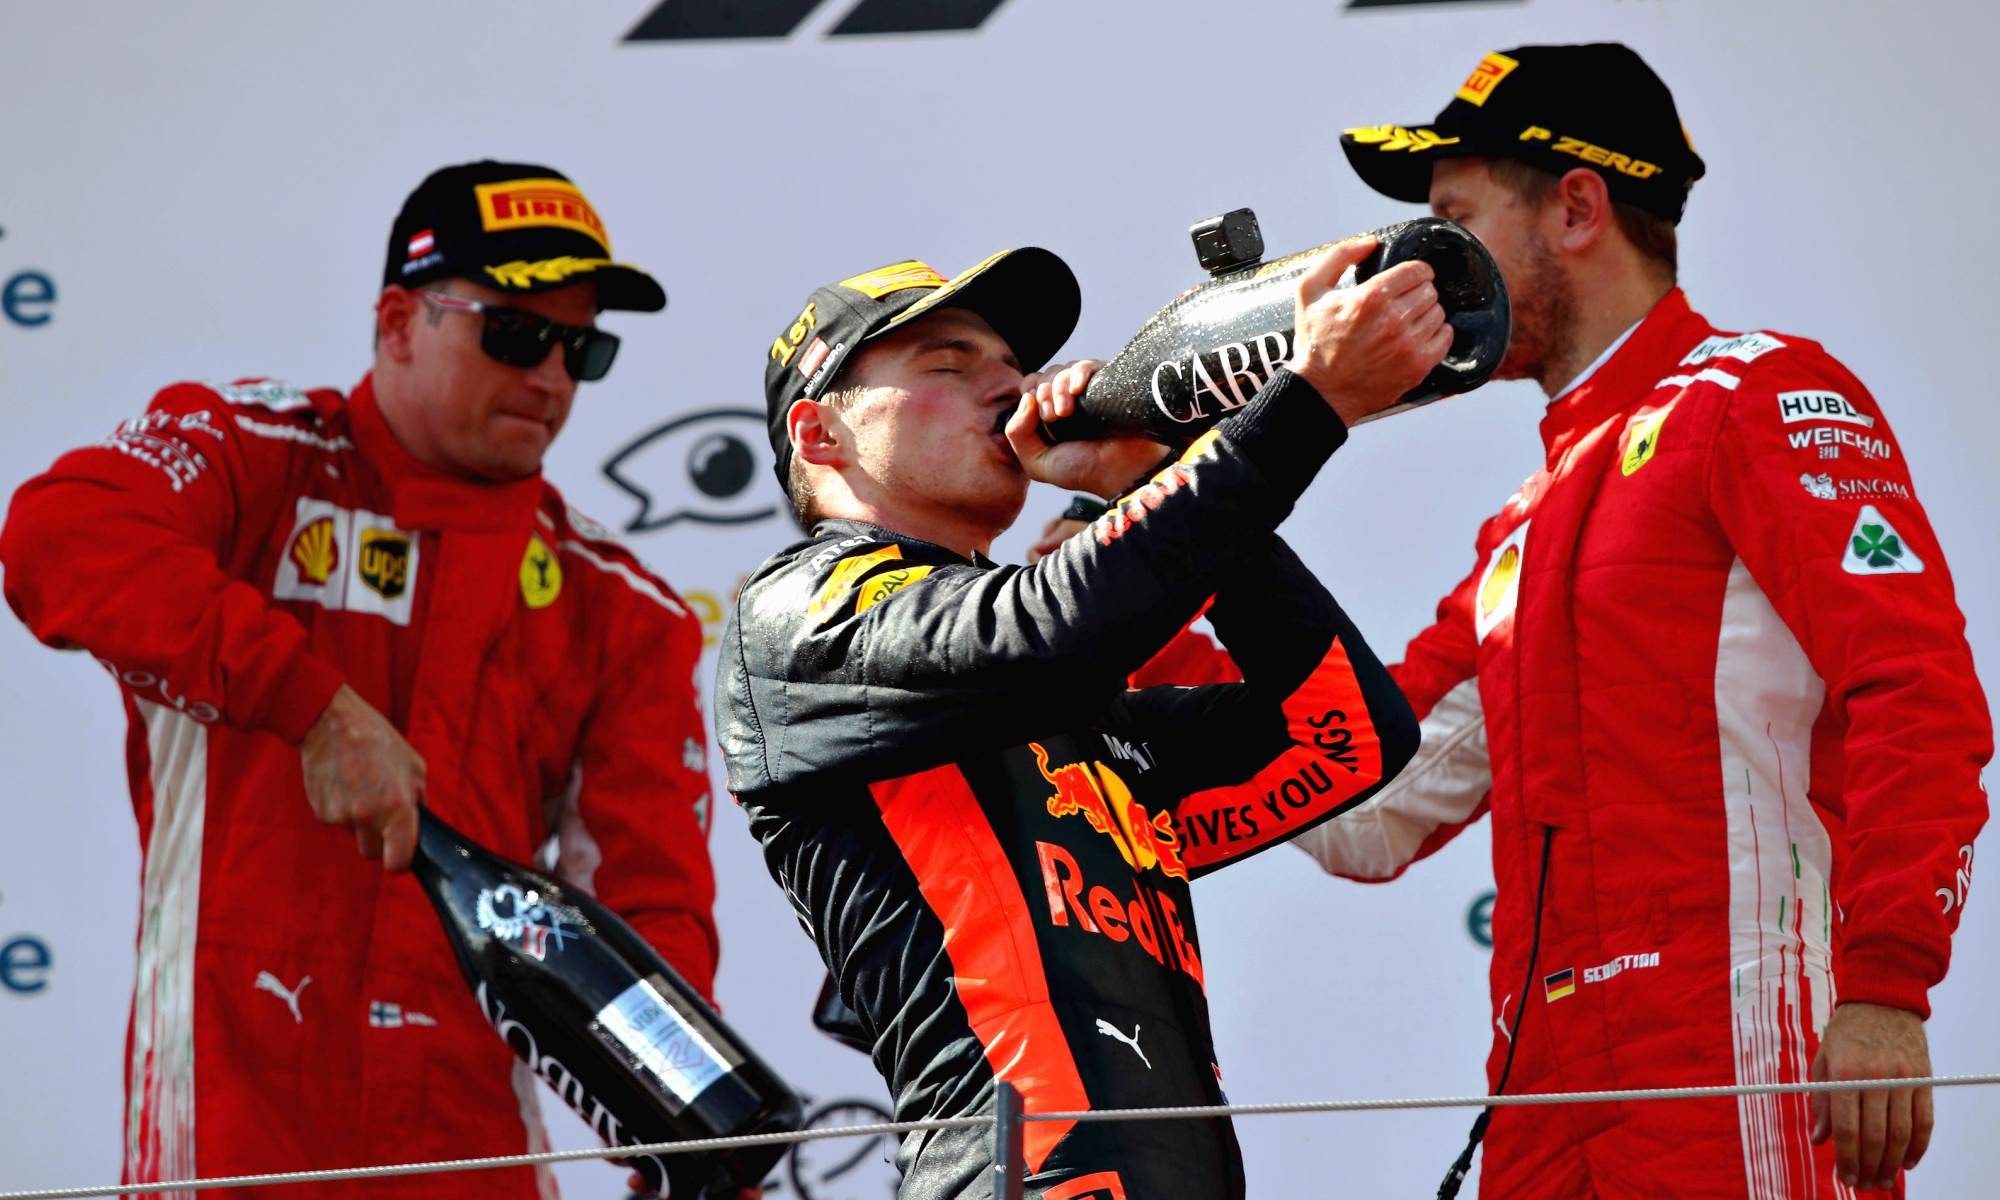 Podium celebrations in Austria